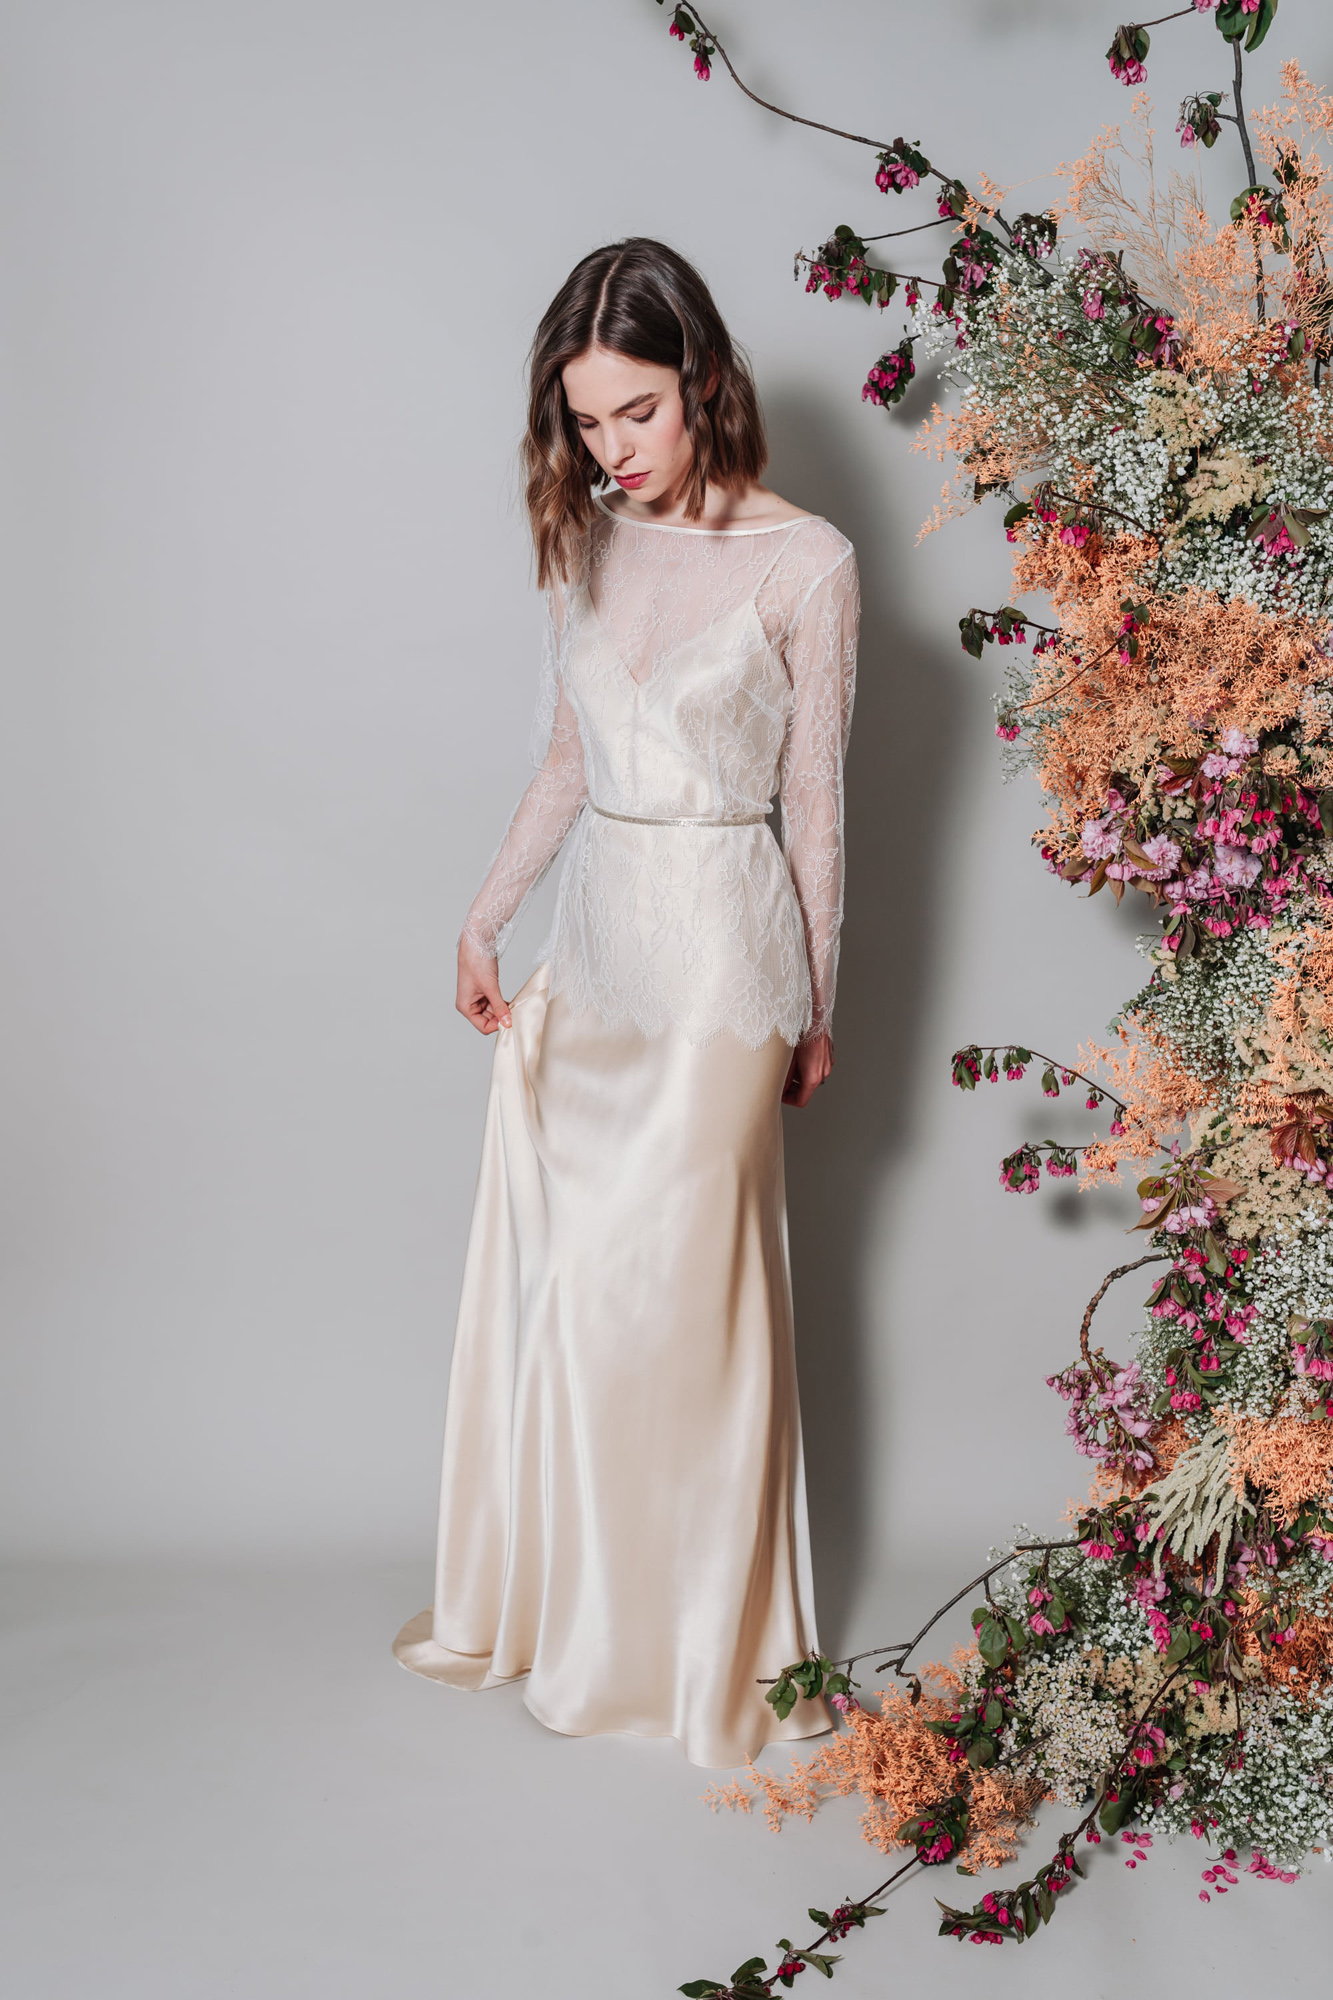 Kate-Beaumont-Sheffield-Thistle-Bridal-Separates-Two-Piece-Lace-Silk-Wedding-Gown-4.jpg